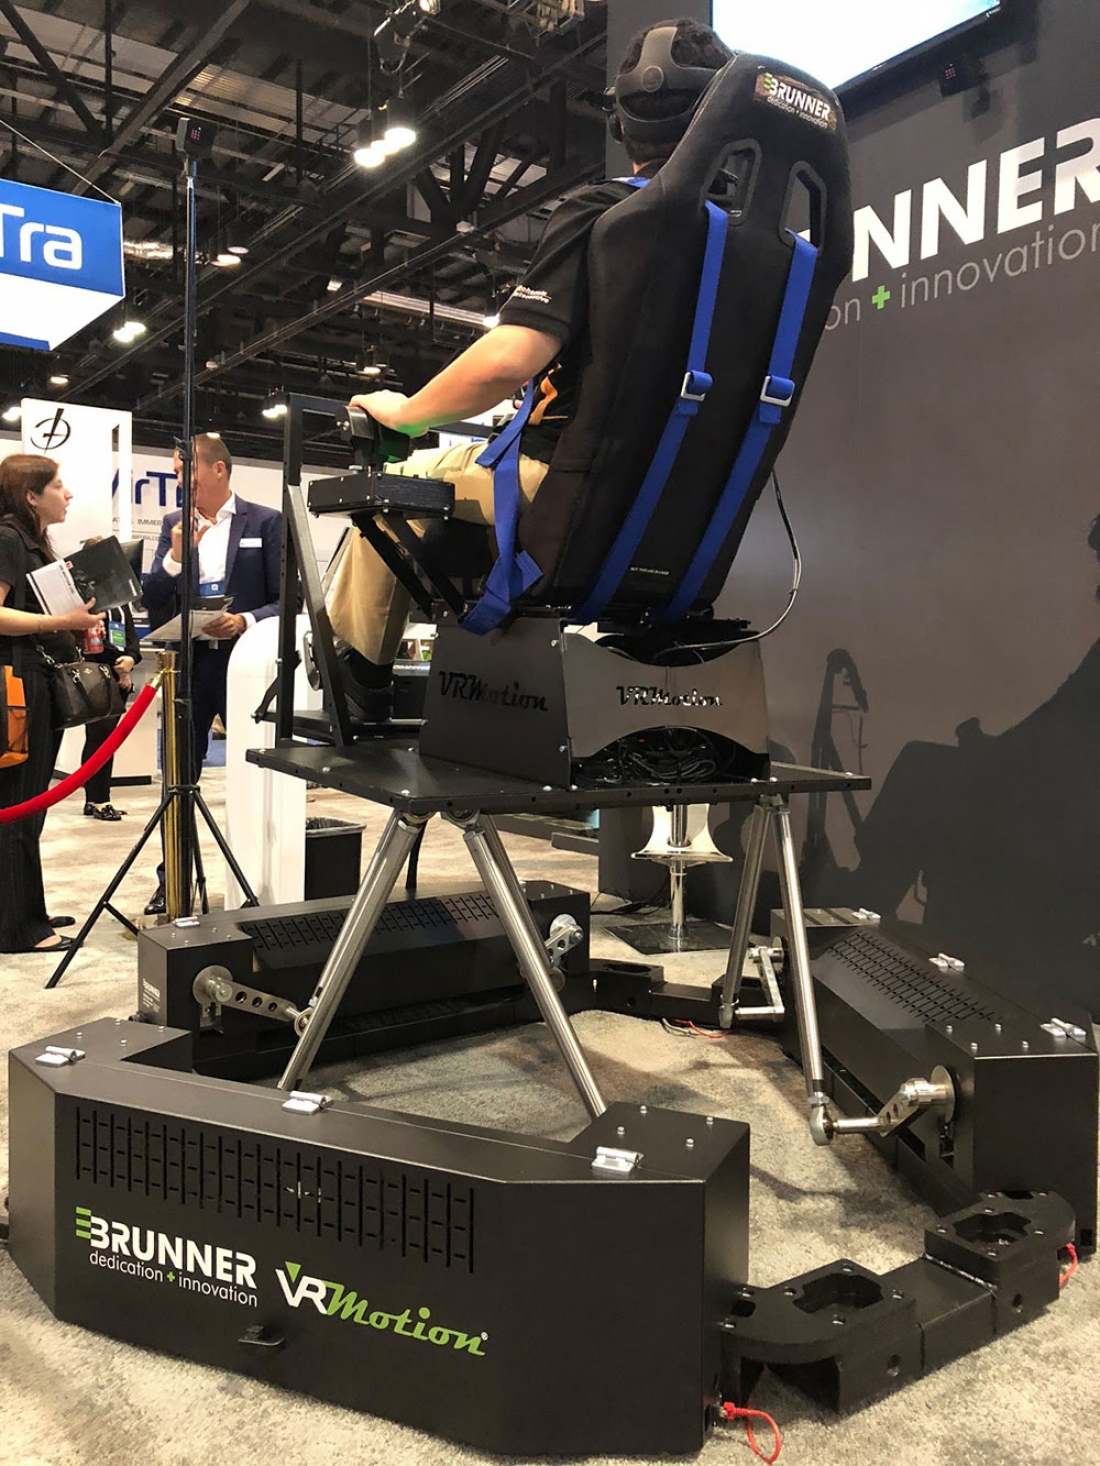 Brunner motion platform 3D flight simulator